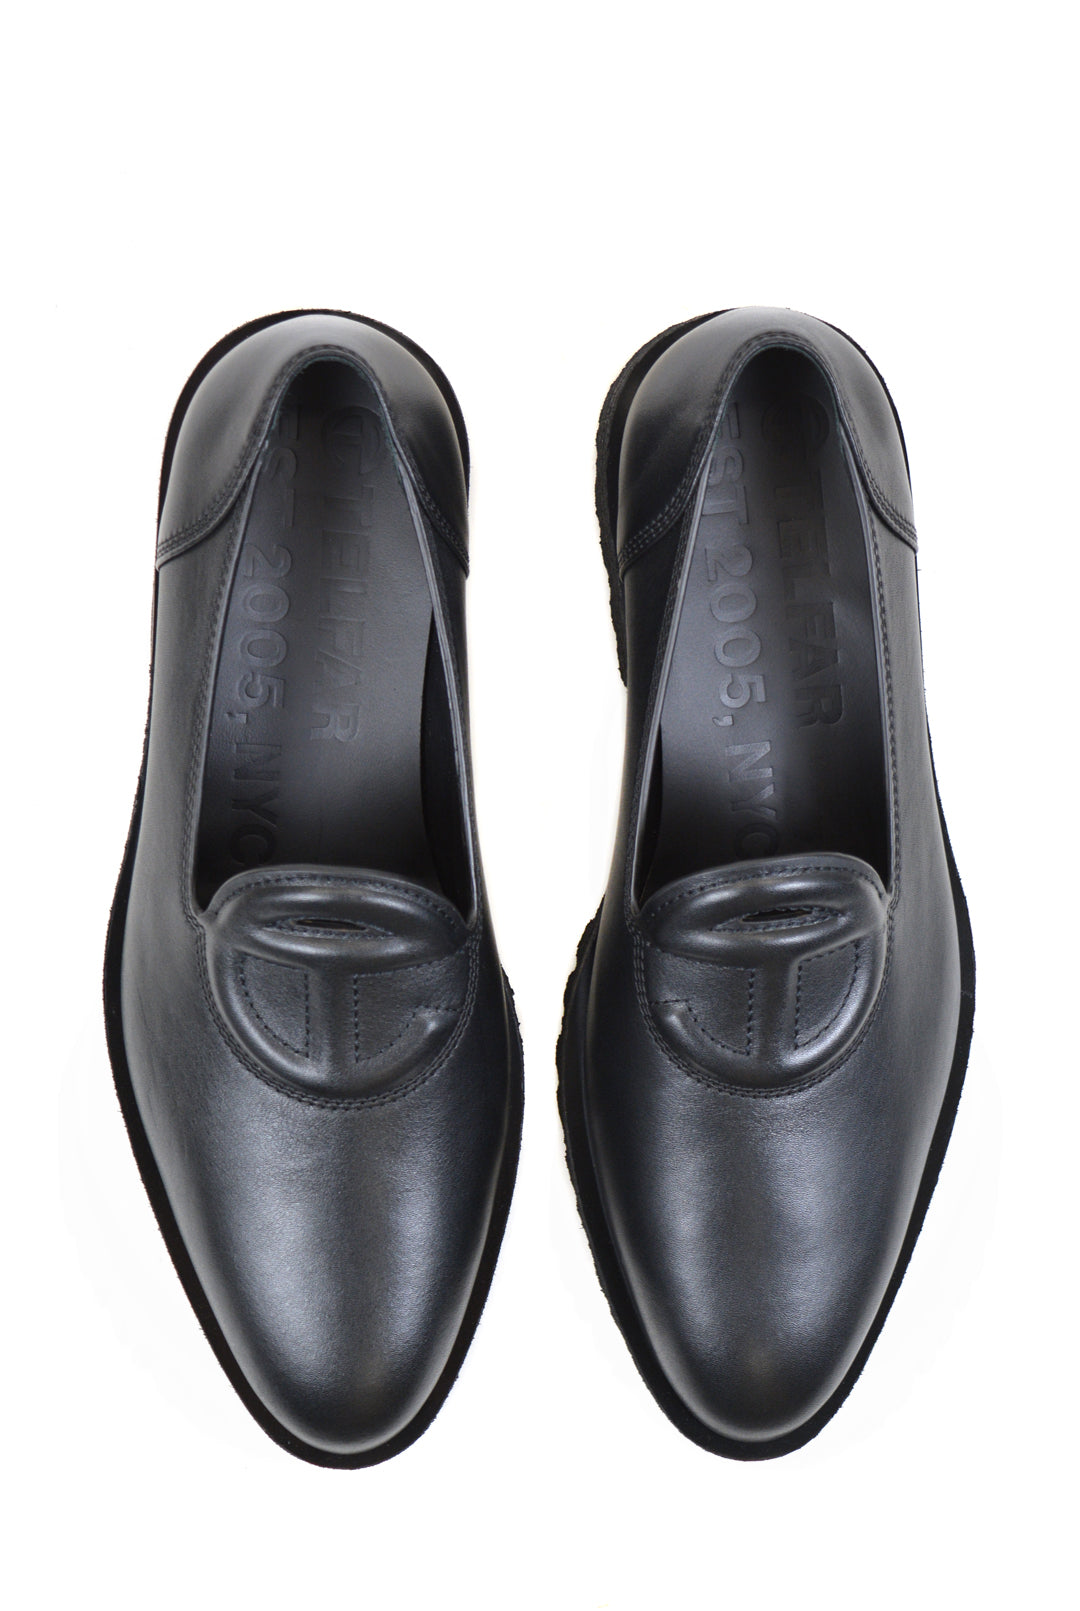 Telfar Logo Loafers